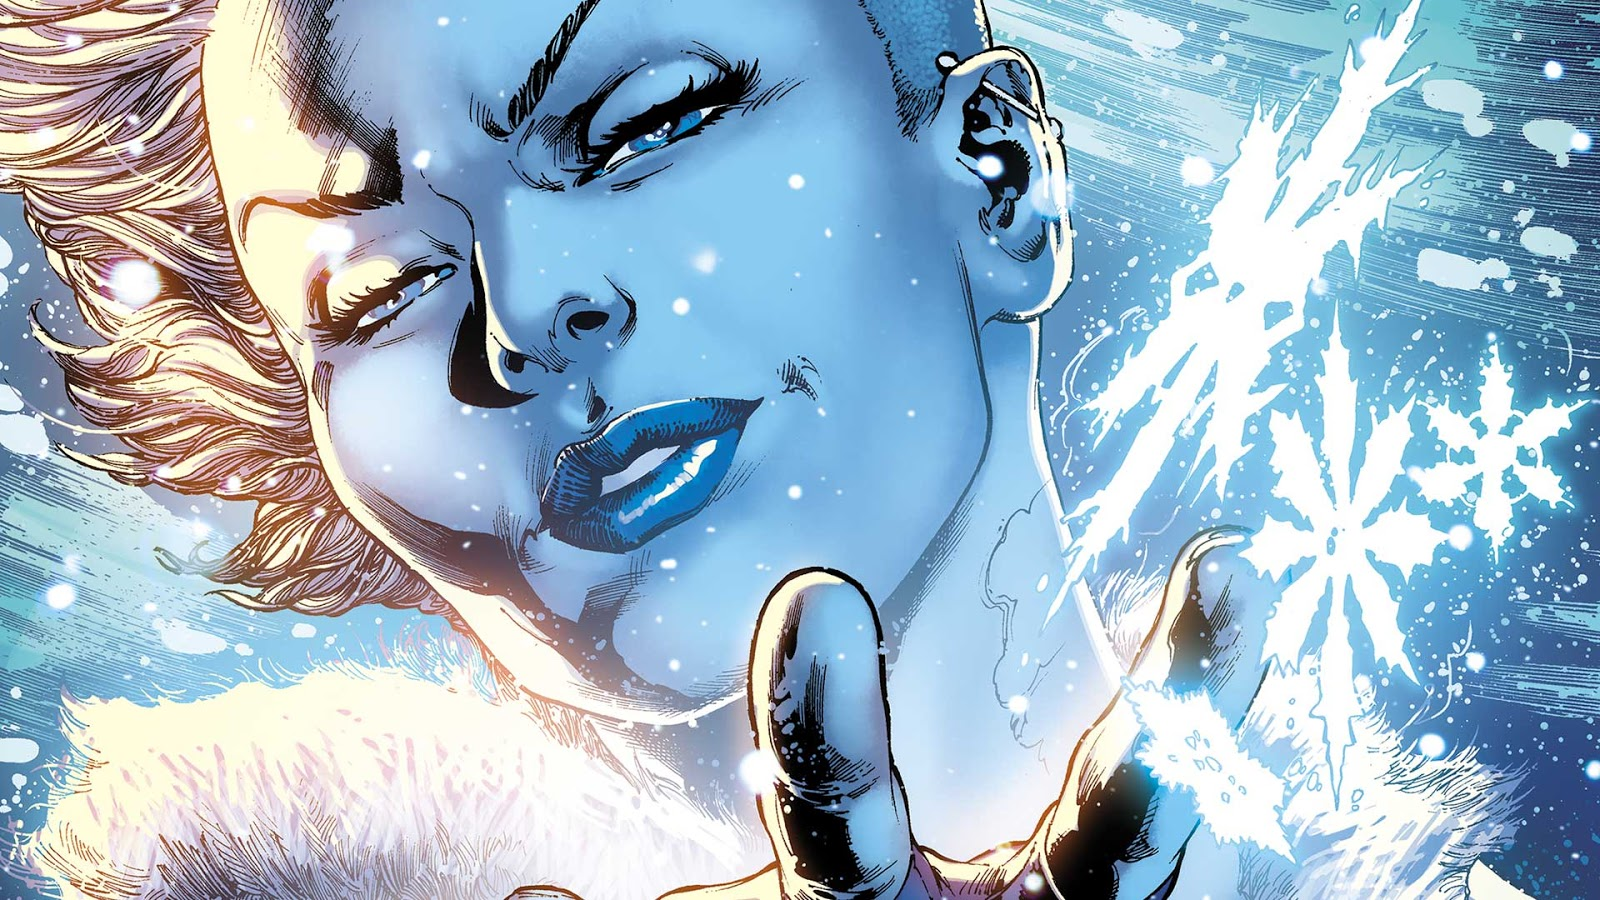 Justice League Review >> Weird Science DC Comics: Justice League of America: Killer Frost Rebirth #1 Review and *SPOILERS*